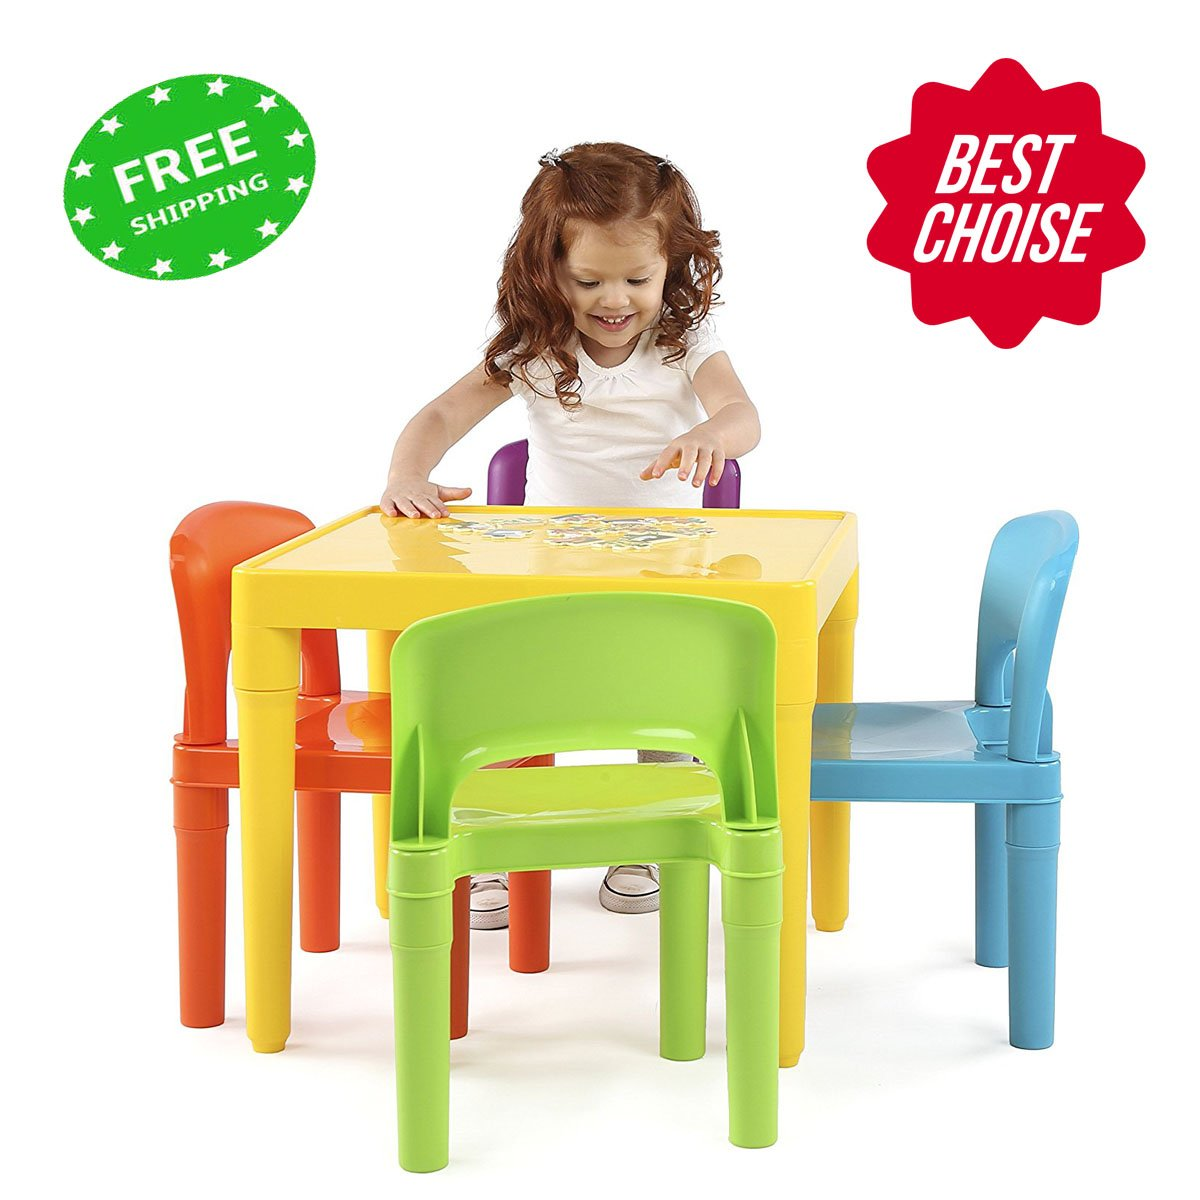 jnwd Kids Work Table Set Cute Colors Small Child Plastic 4 Chairs Toddler Activity Games Hobbies Station & e-Book by jn. Widetrade.